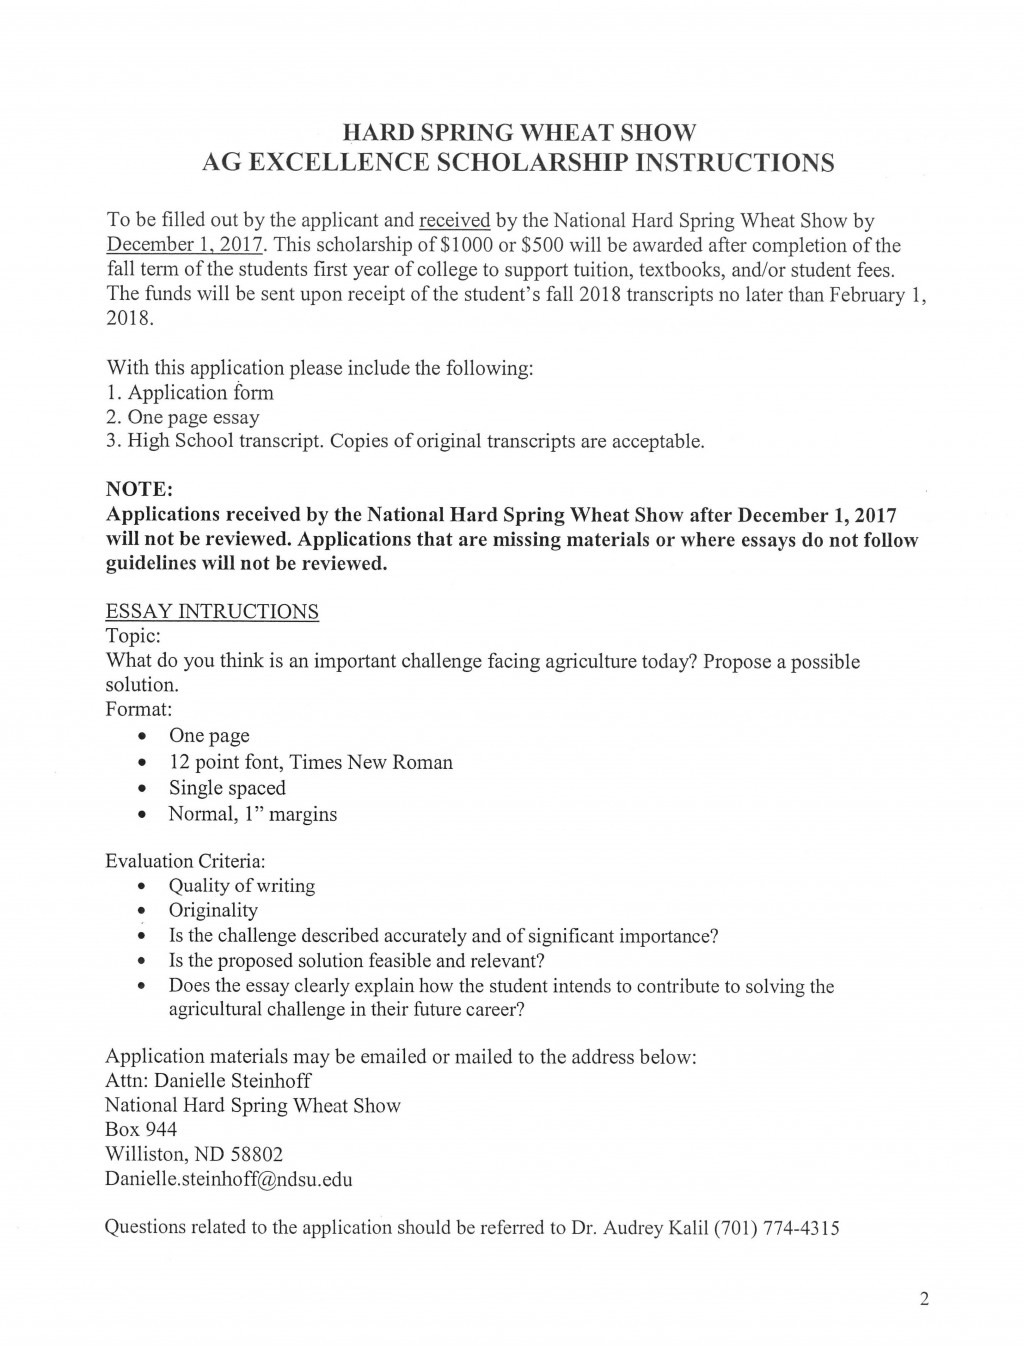 004 Essay Example Page 2 Scholarships Wonderful 2017 No College Canada Large